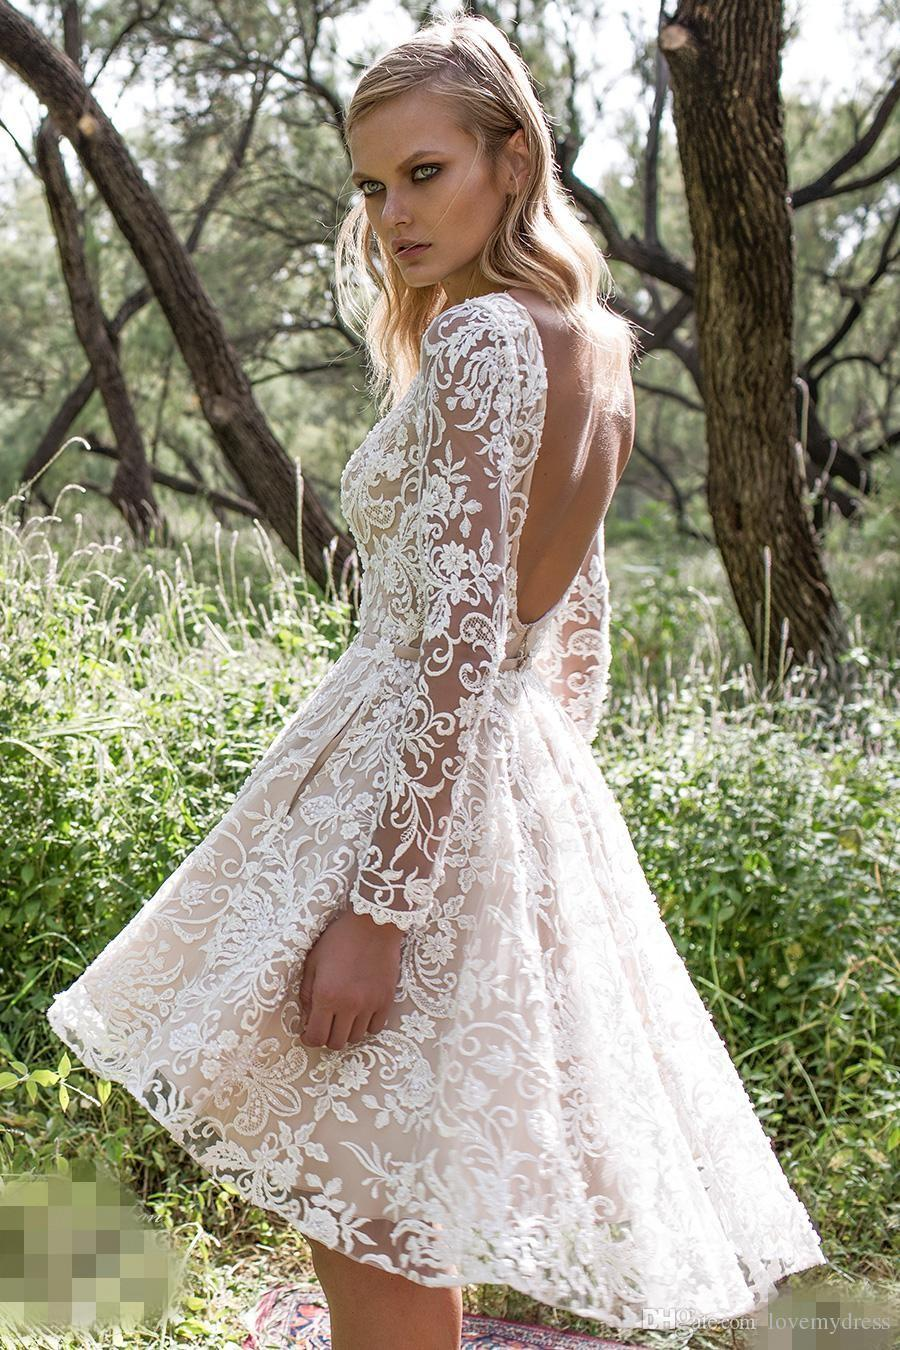 Backless Cheap Price Wedding Gown Elegant Beautiful Hot Sale Long Sleeve Customize Formal Wear High Quality Short High Low Bridal Gown